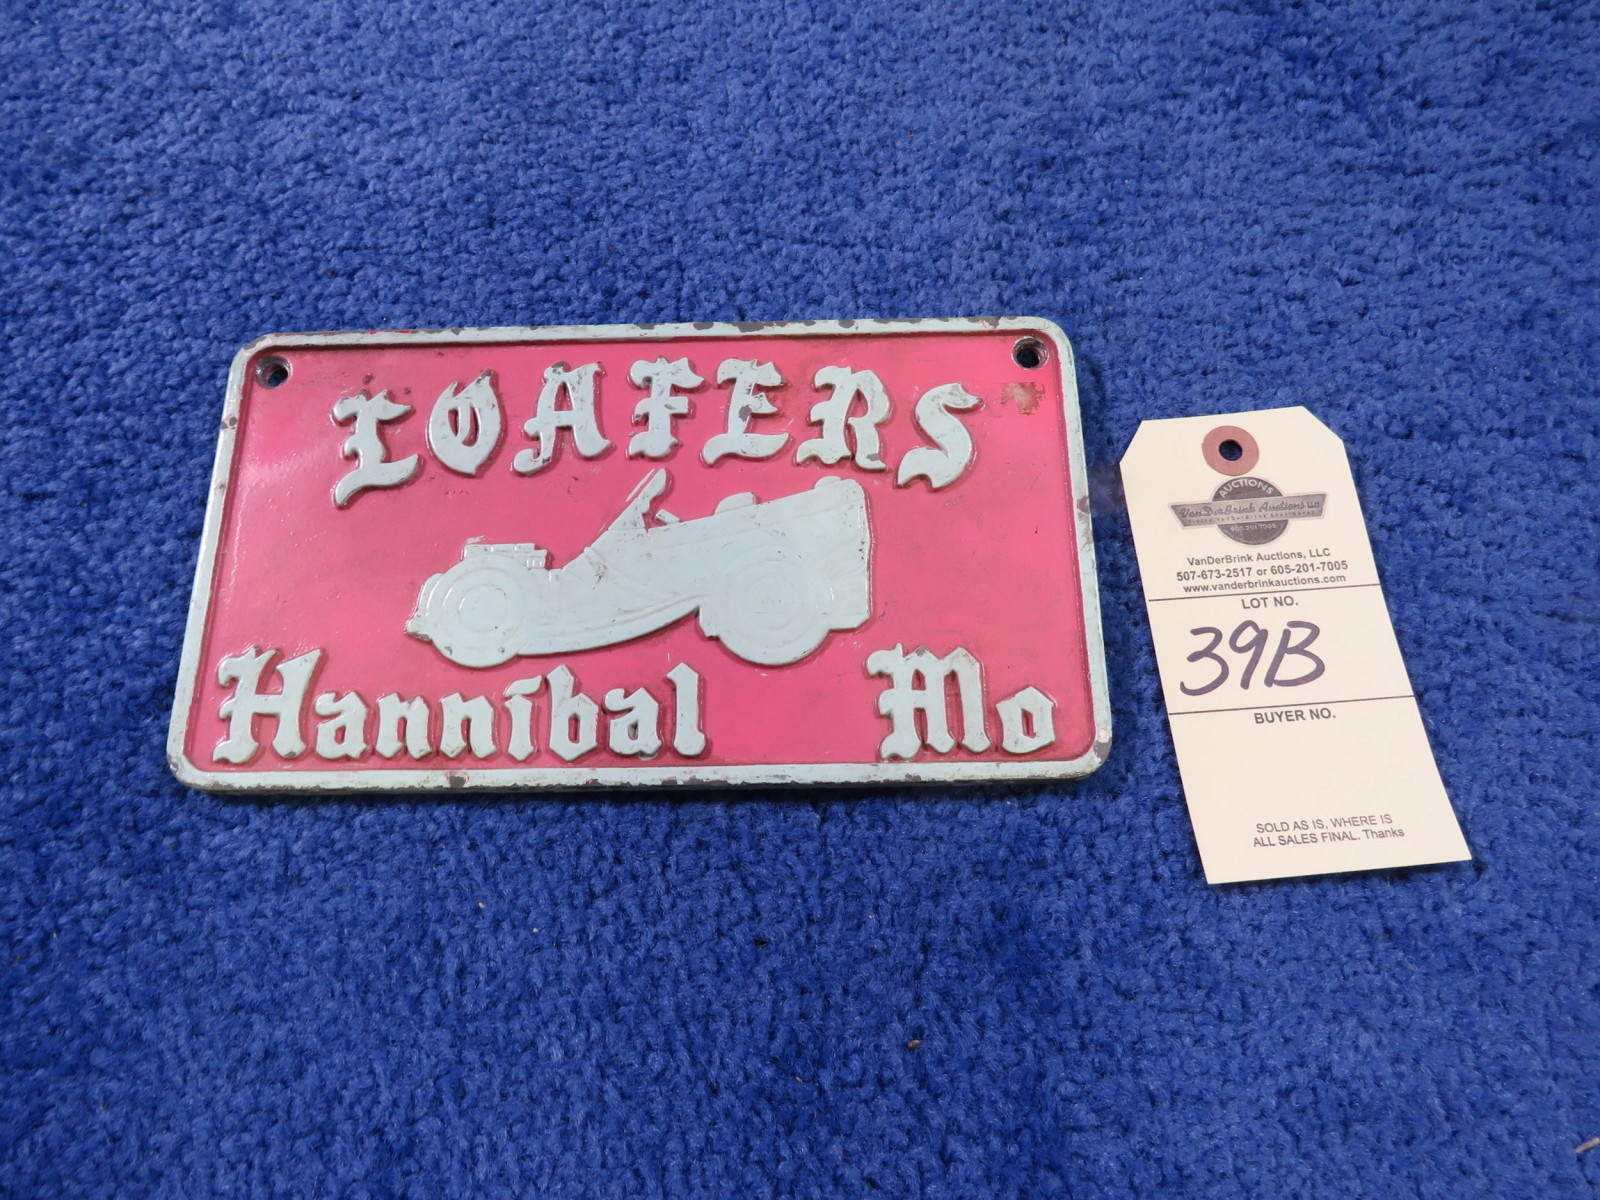 Loafers from Hannibal, MO Vintage Vehicle Club Plate- Pot Metal - Image 1